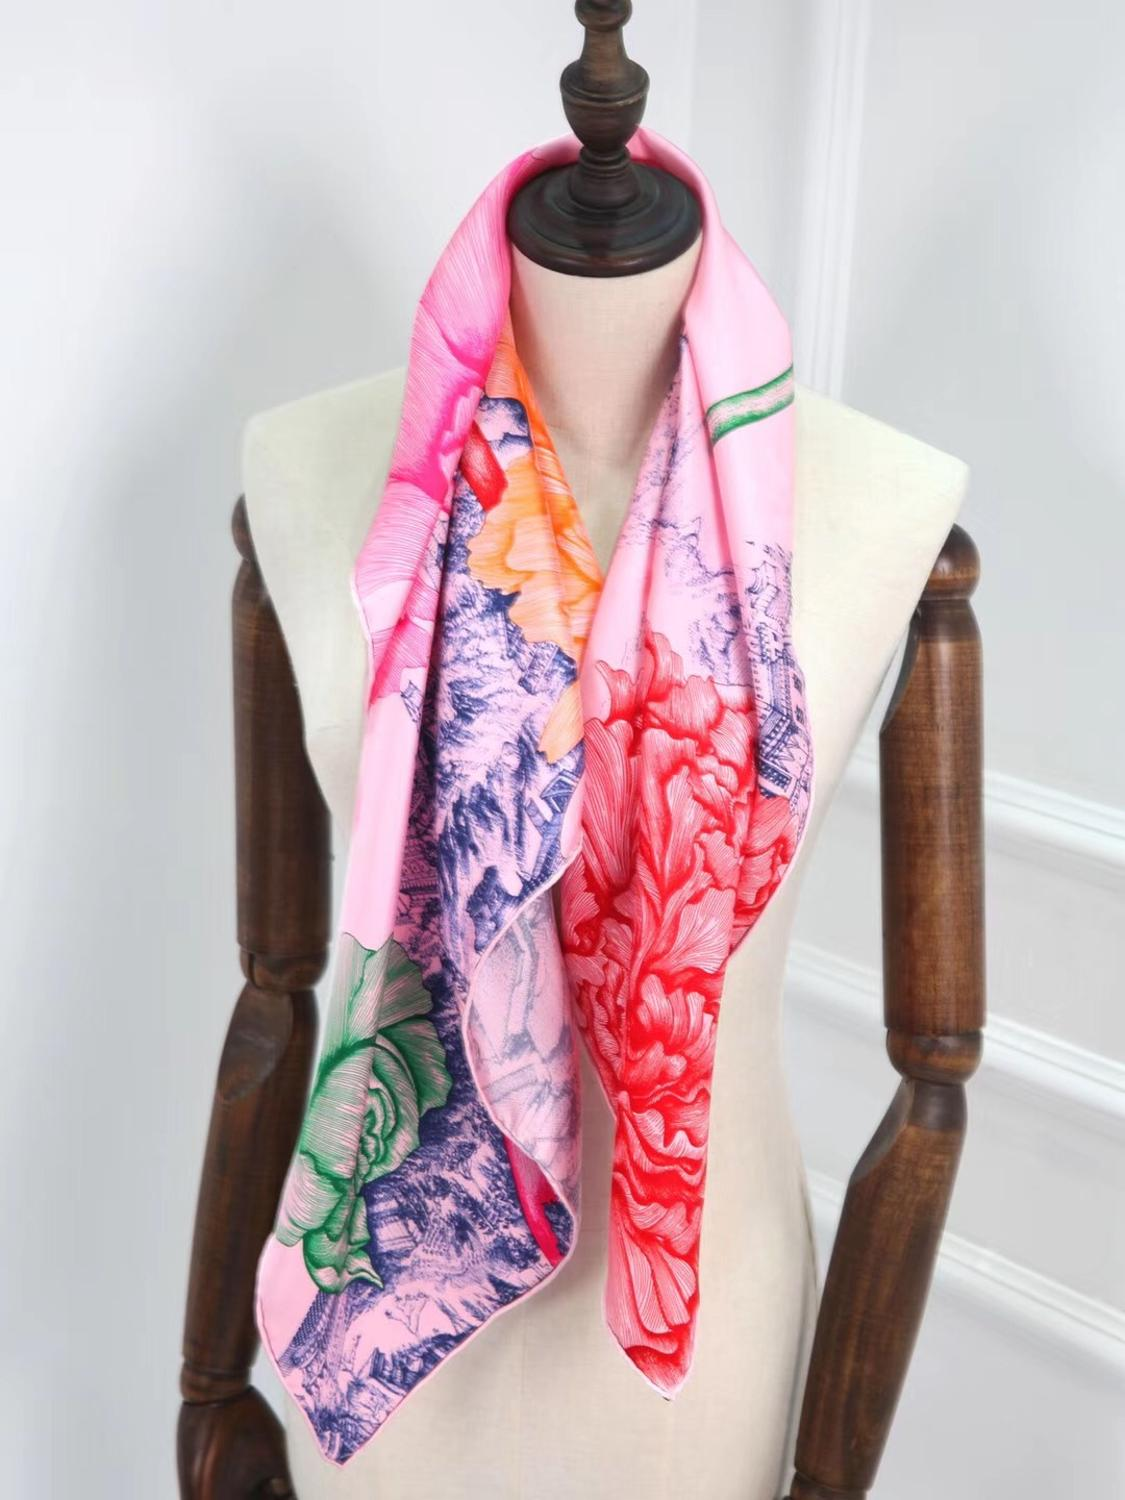 2020 new arrival spring classic pattern 100% pure silk scarf twill hand made roll 90*90 cm shawl wrap for women lady